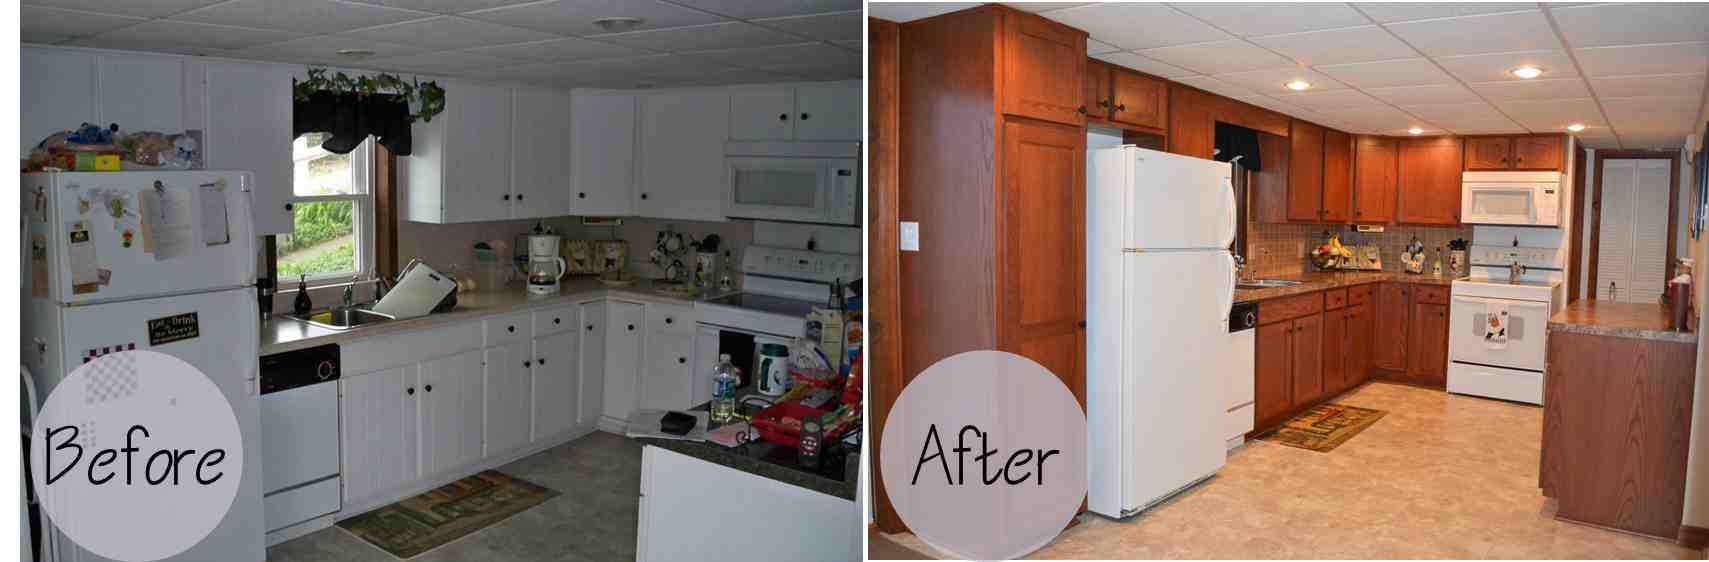 Kitchen Cabinet Refacing Before And After Photos Decor Ideas